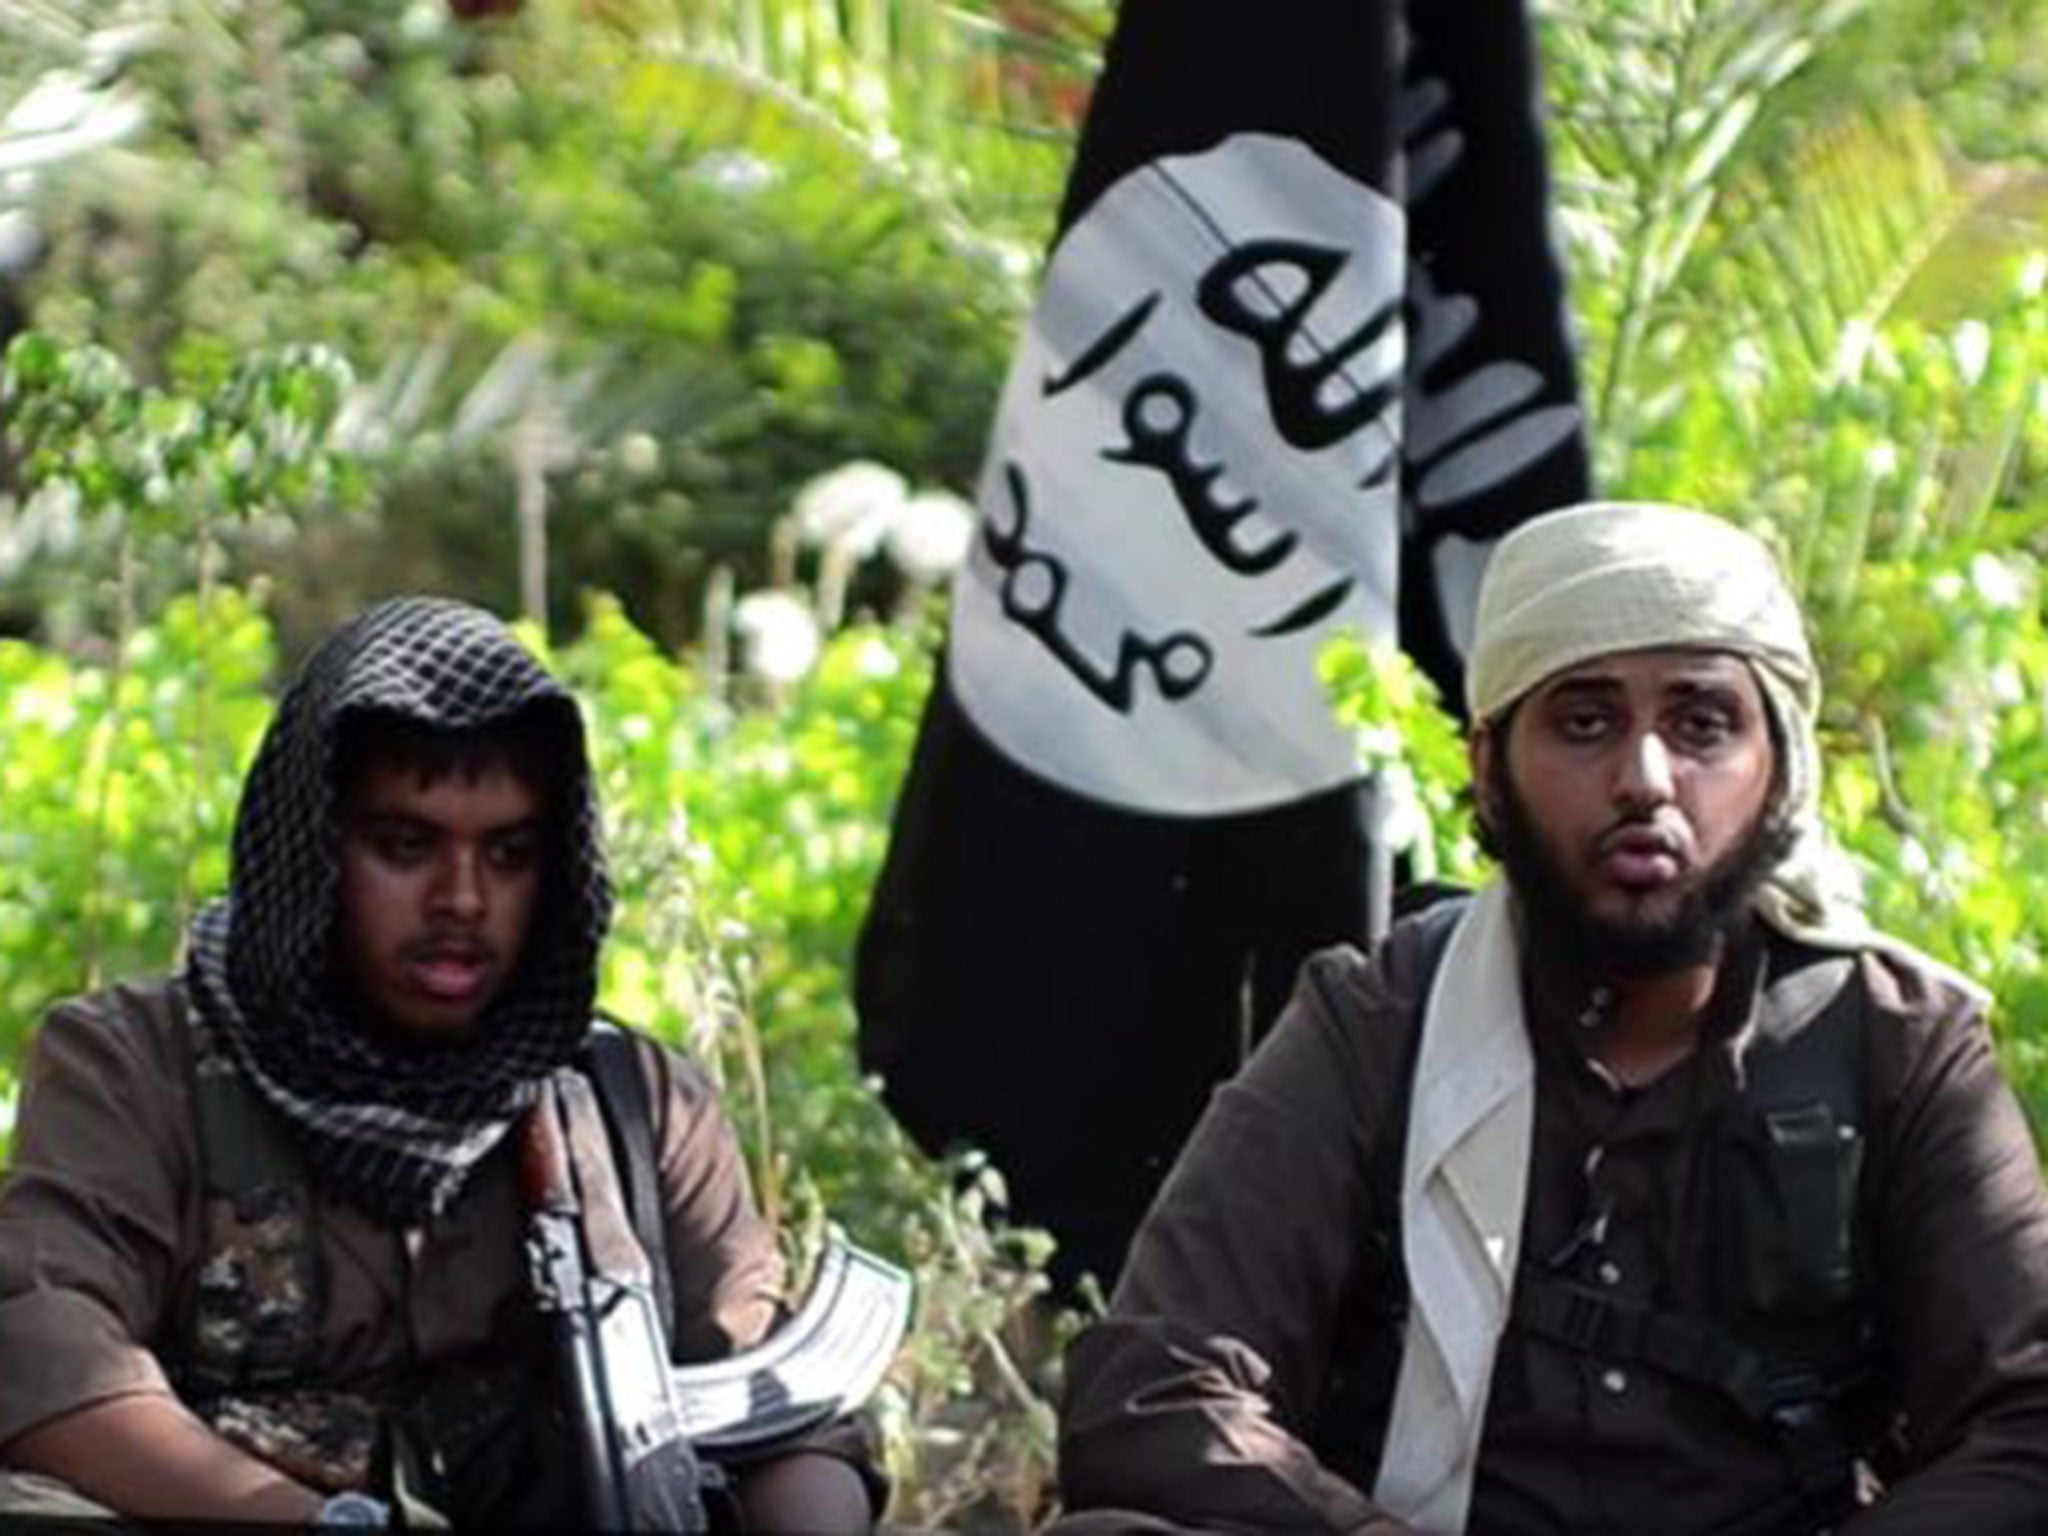 James Foley 'beheaded': Why British jihadists go to fight in Syria